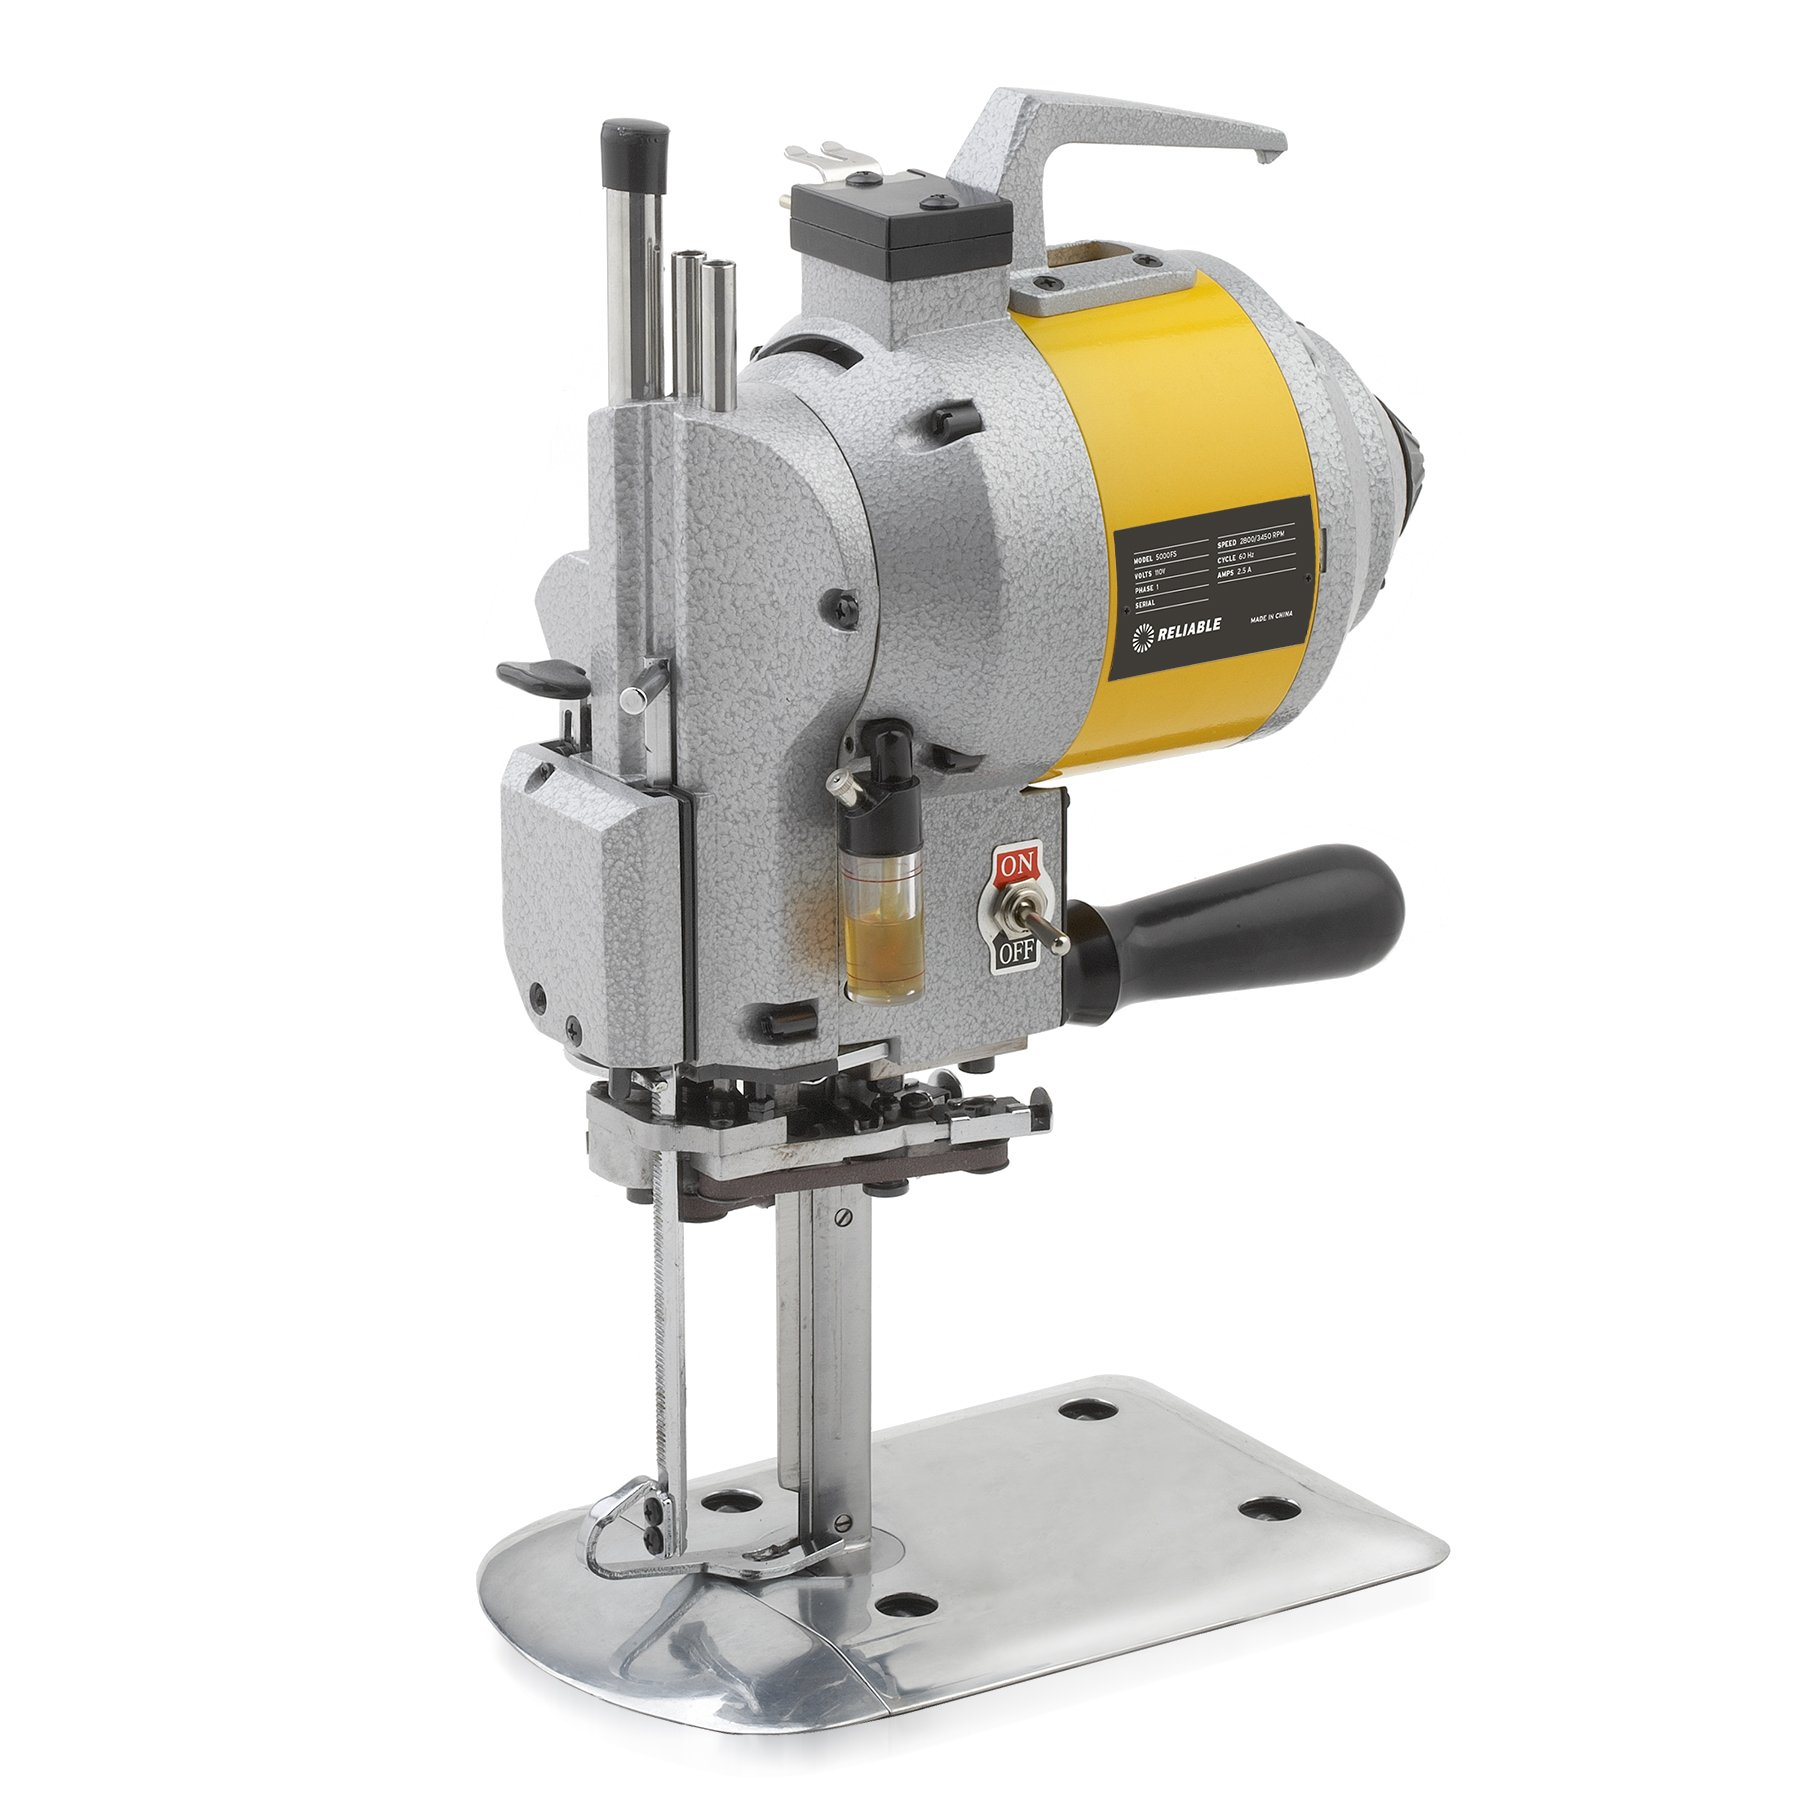 Reliable 5000FS 5-Inch High-Speed Straight-Knife Cloth-Cutting Machine